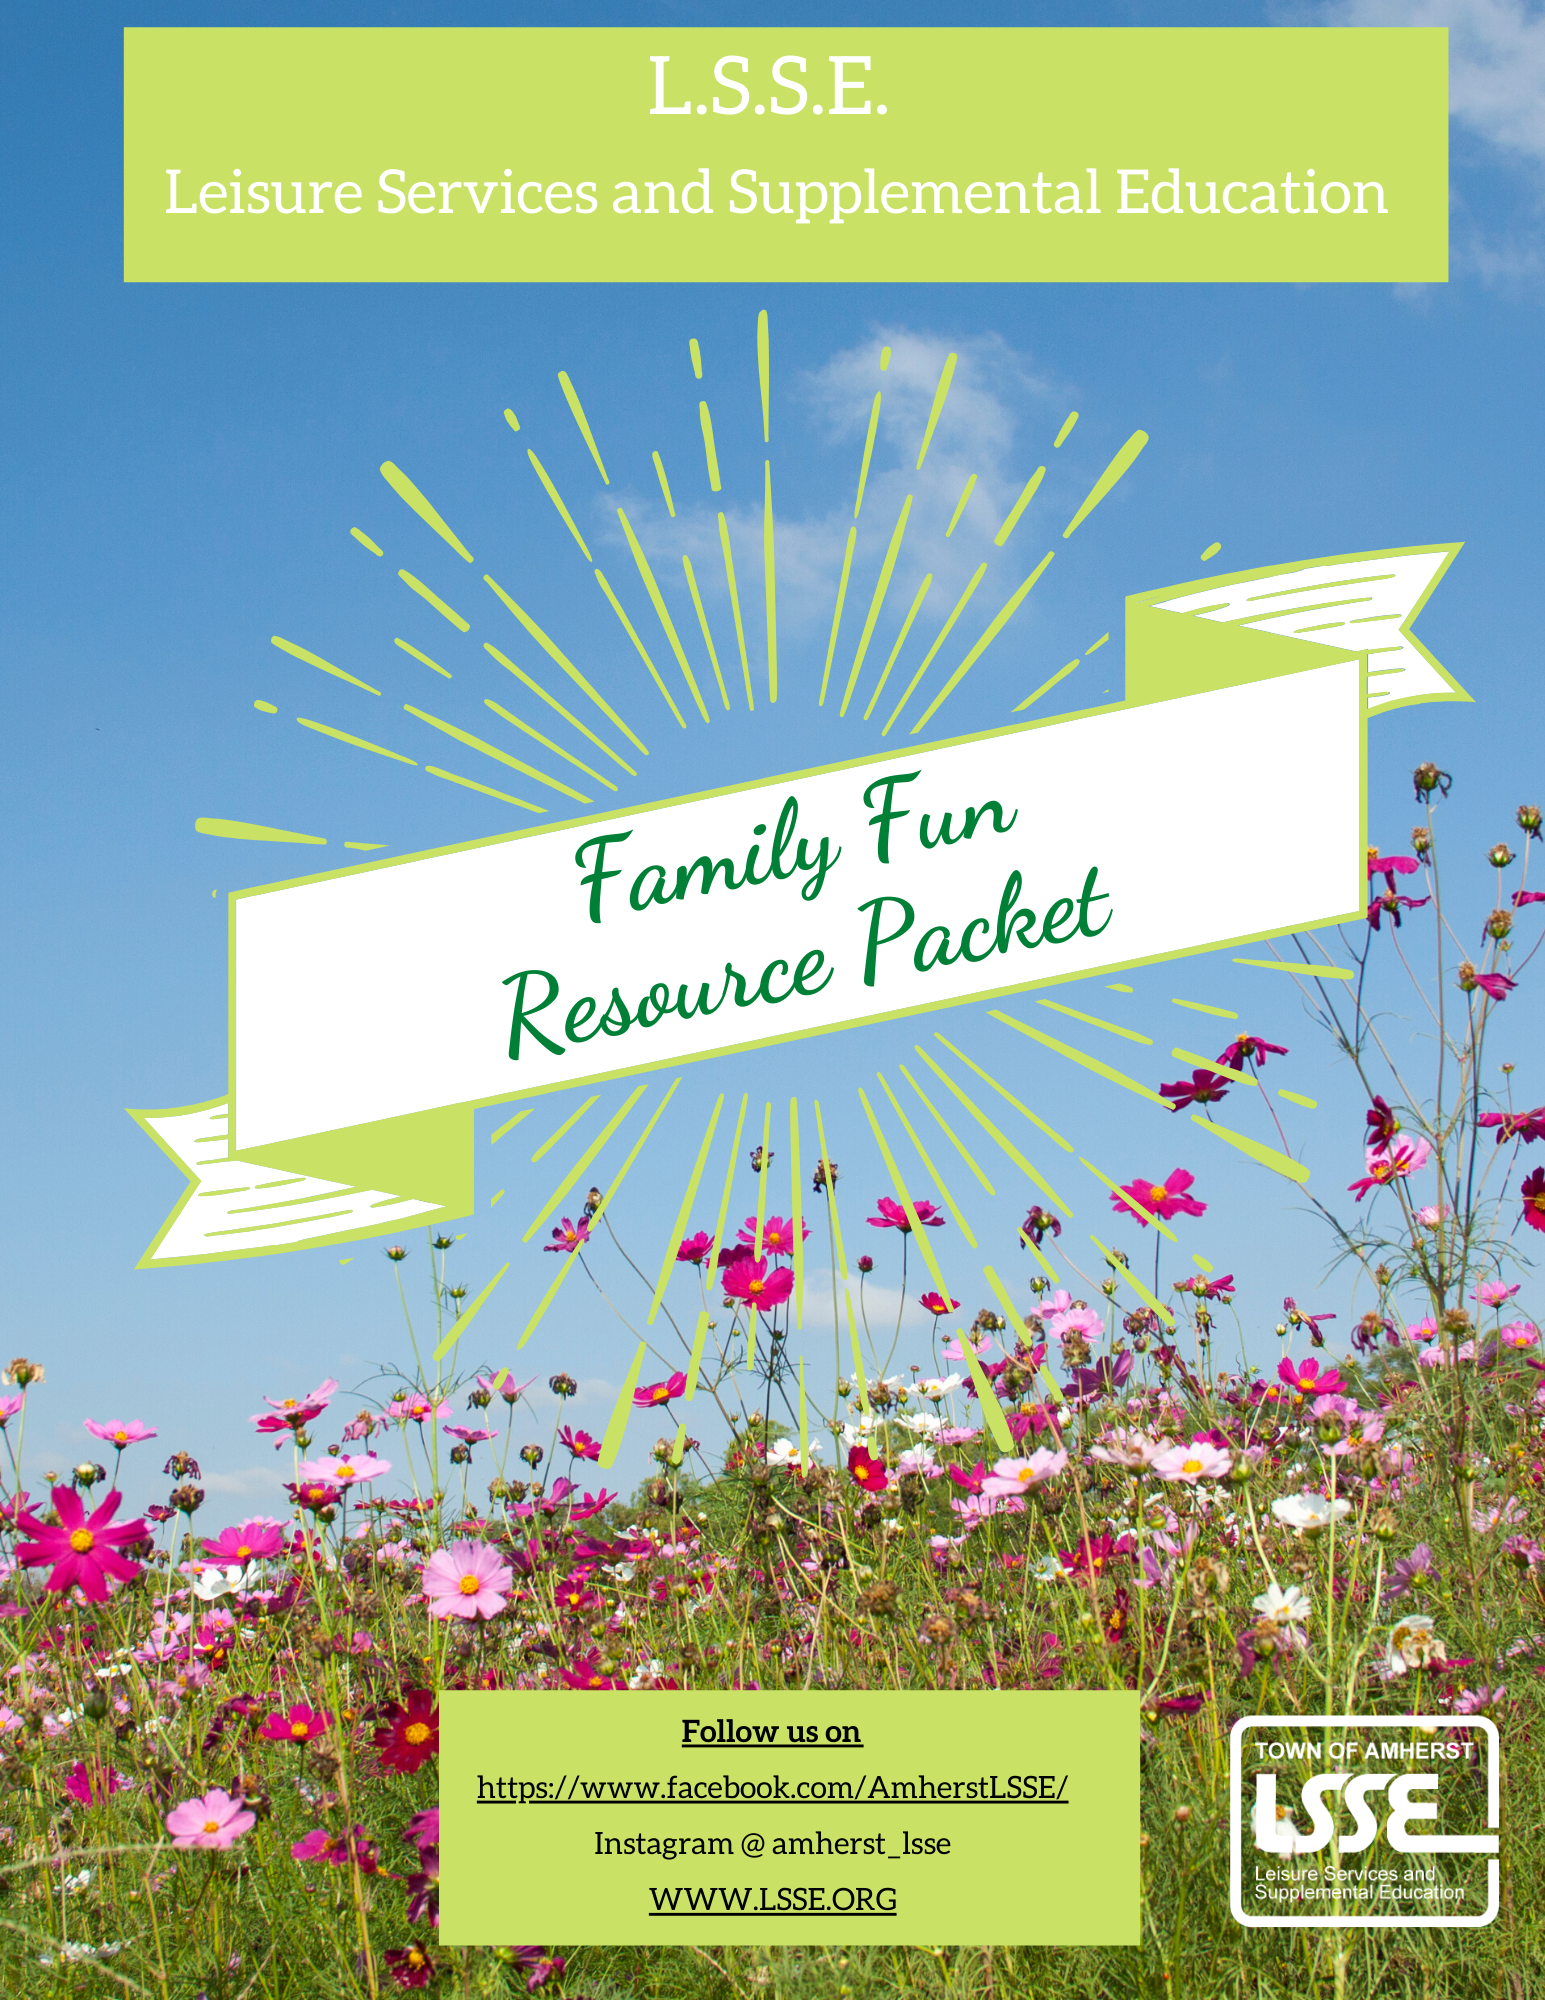 Family Fun Packet